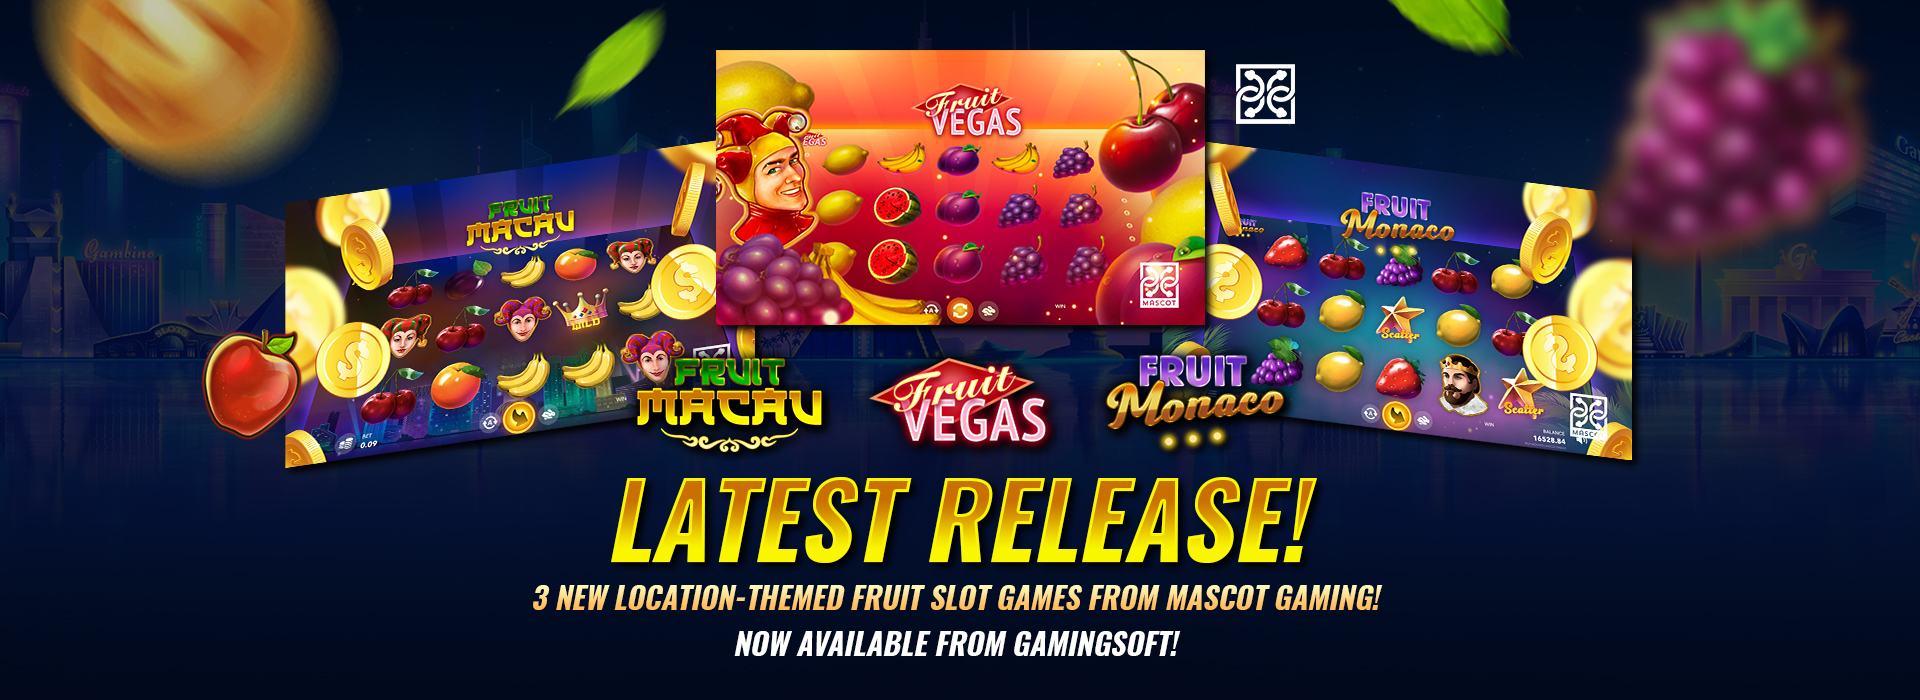 Check out the New Fruit-themed Slot Games Provided by Mascot Gaming - GamingSoft